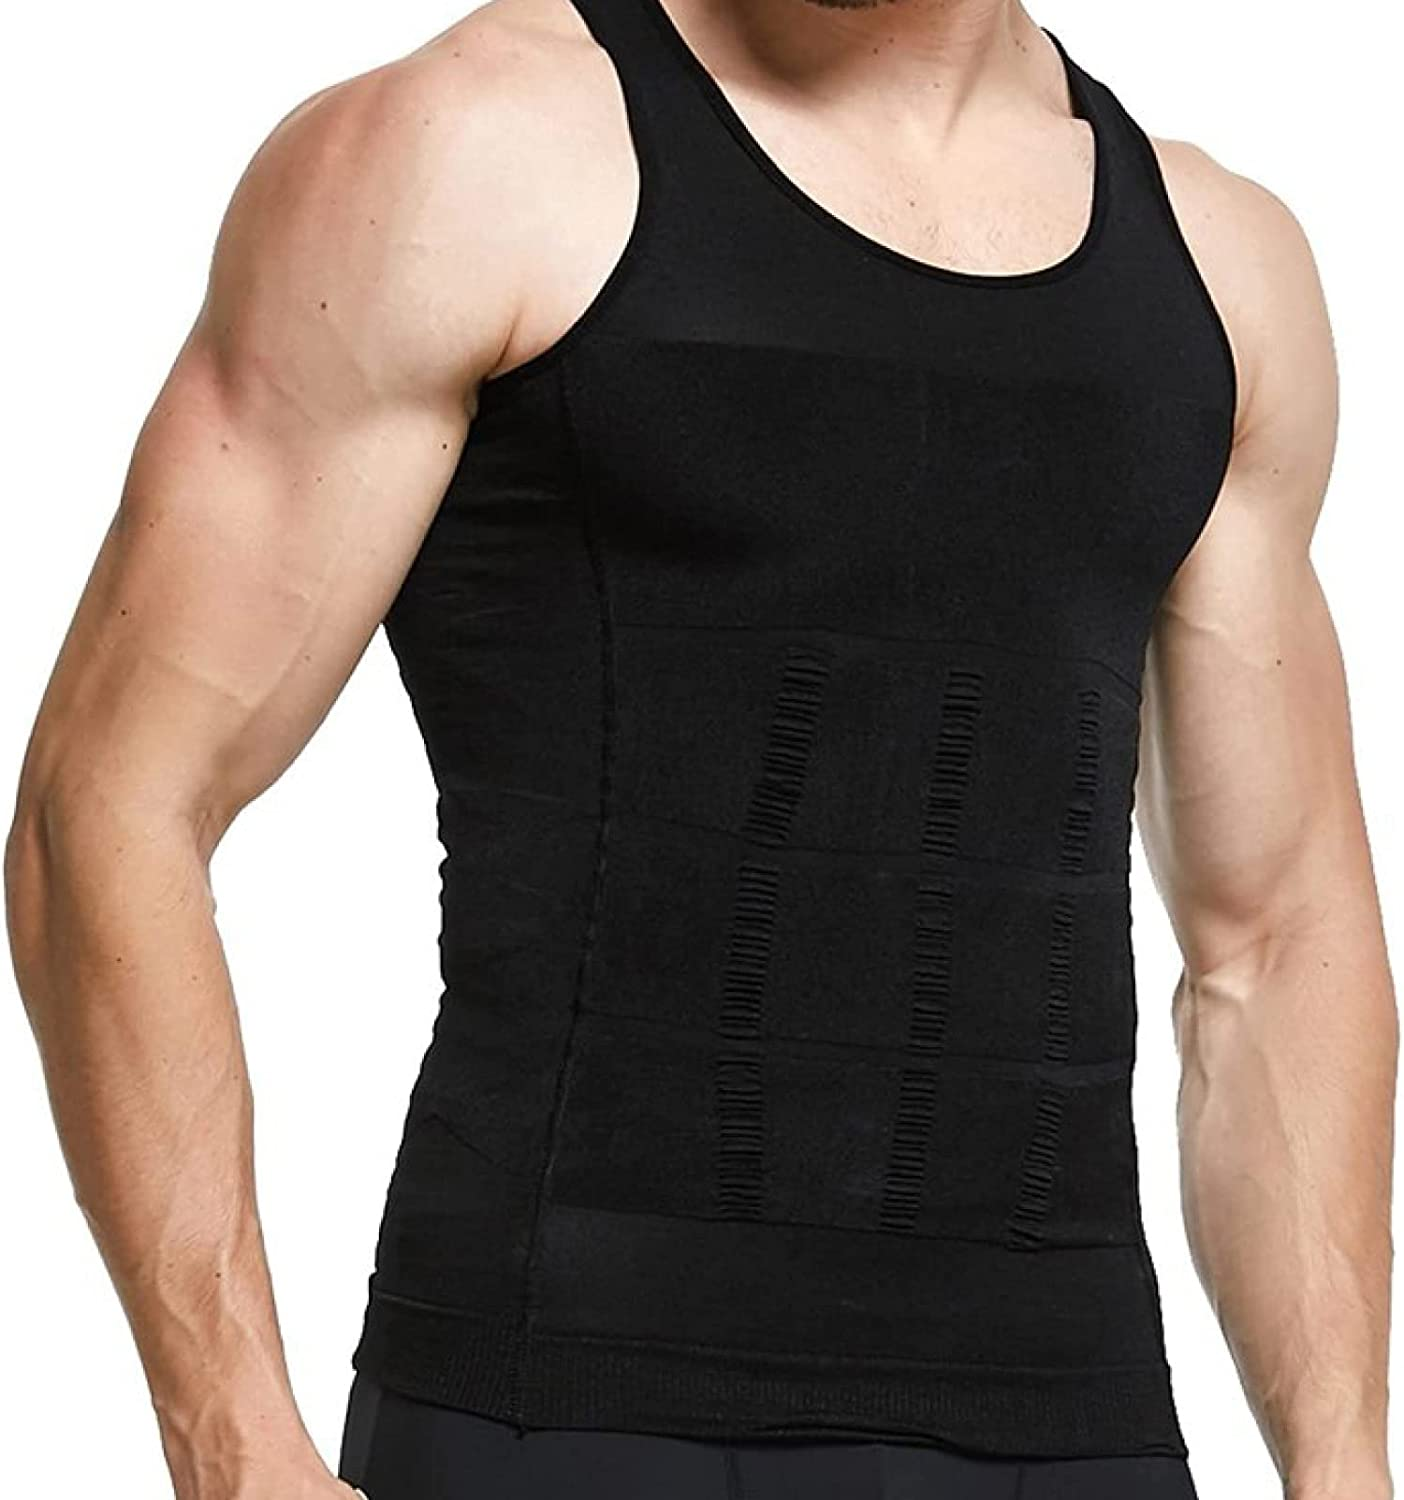 Men Tight Compression Shirts Slimming Tummy Control Tops Scoop Neck - Weight Loss Shapewear Vest for Gym Exercise